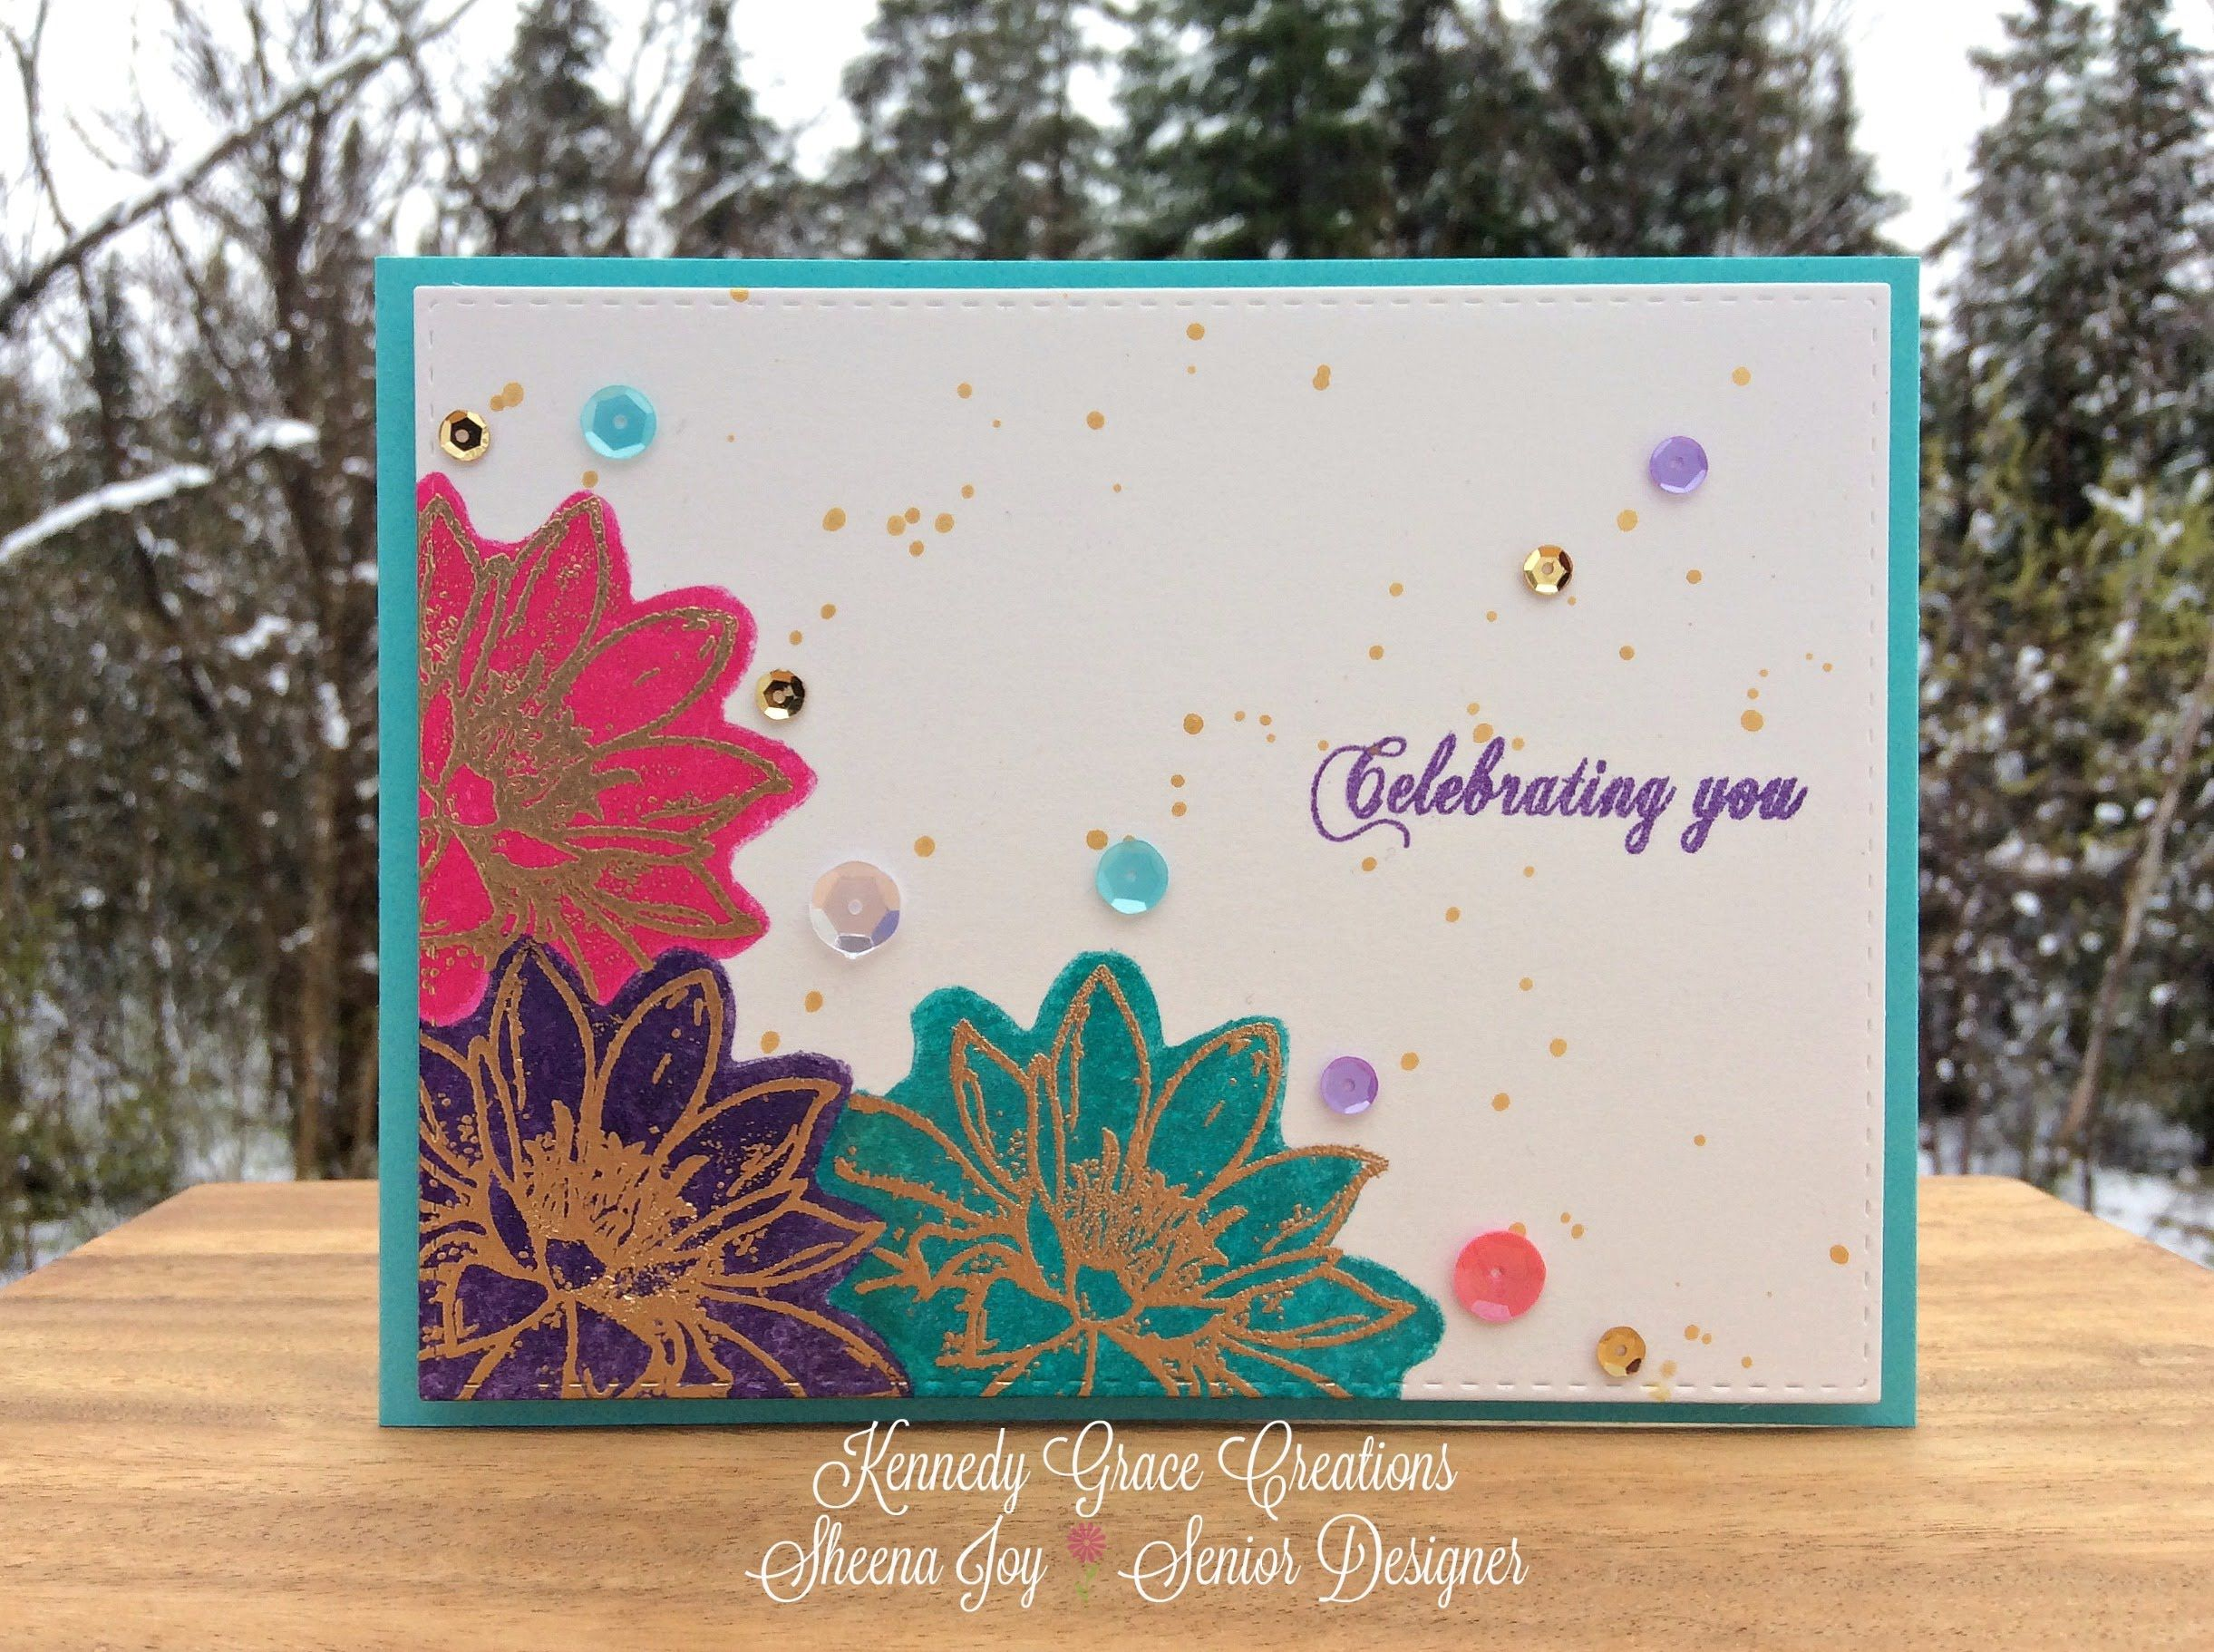 Come join our blog hop for a chance to win a prize & to see amazing inspiration from our talented Design Team & Guest Designers: http://kennedygracecreations...